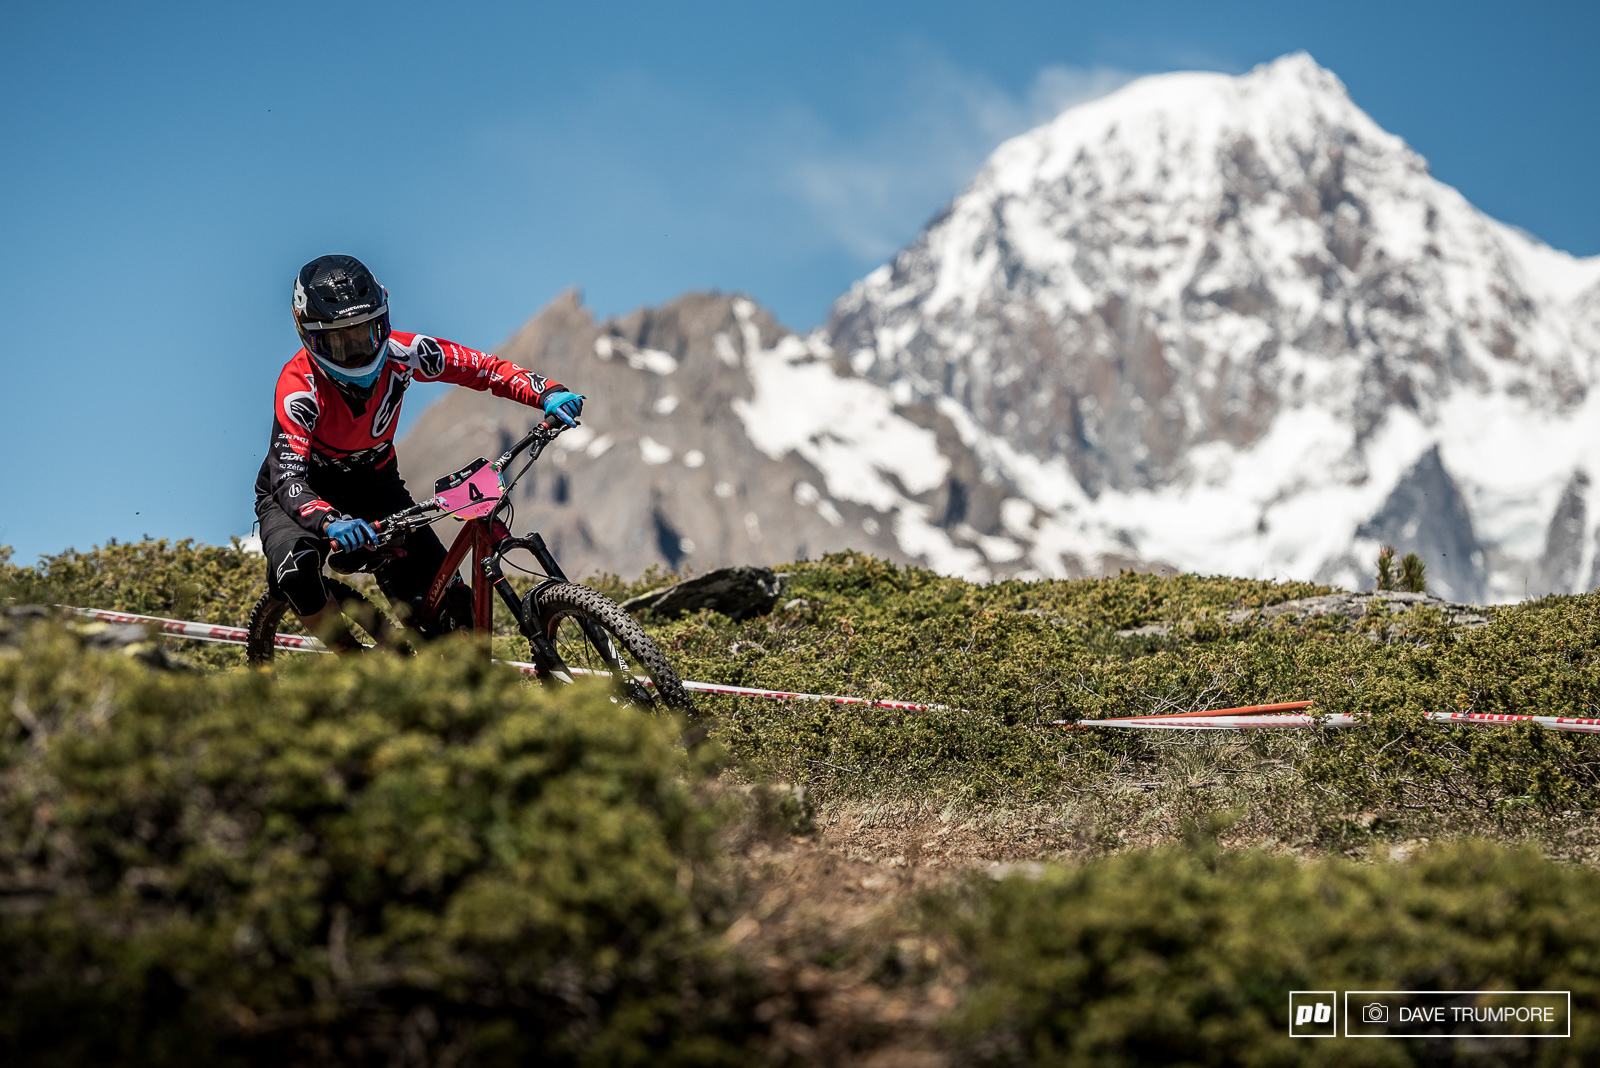 Issabeau Cordurier drops into the top of Stage 2 with the imposing presence of Monte Bianco in the background. She is currently in second place and quite a far way off the pace of Cecile.